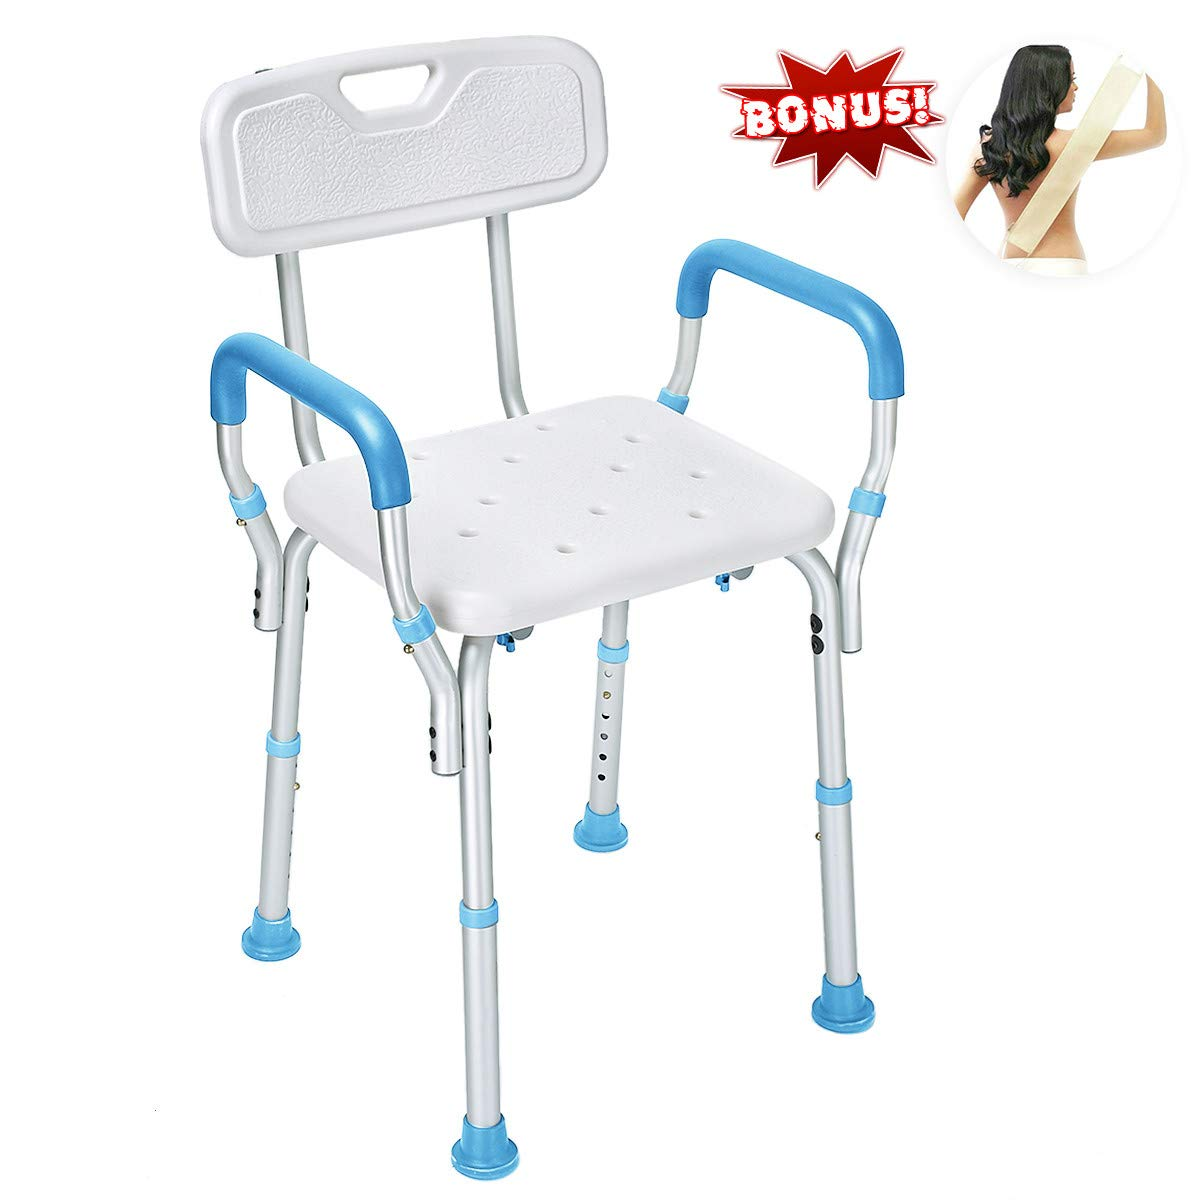 Latest Version ! Health Line Tool-Free Assembly Shower Chair Bath Bench Stool Adjustable Height with Removable Back and Arms & Non-Slip Feet - w/Bonus Loofah Back Scrubber